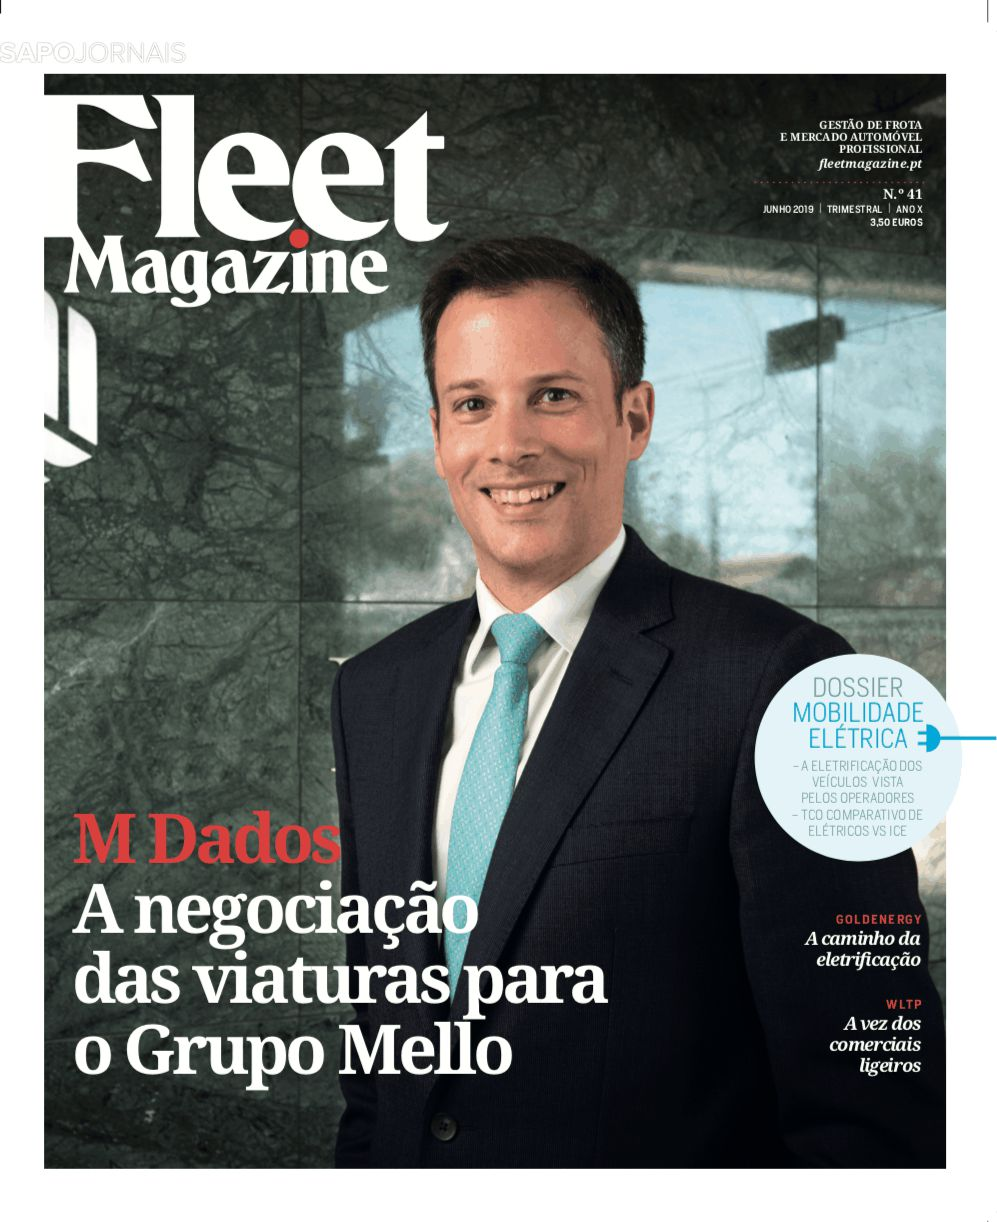 Capa da Revista Fleet Magazine